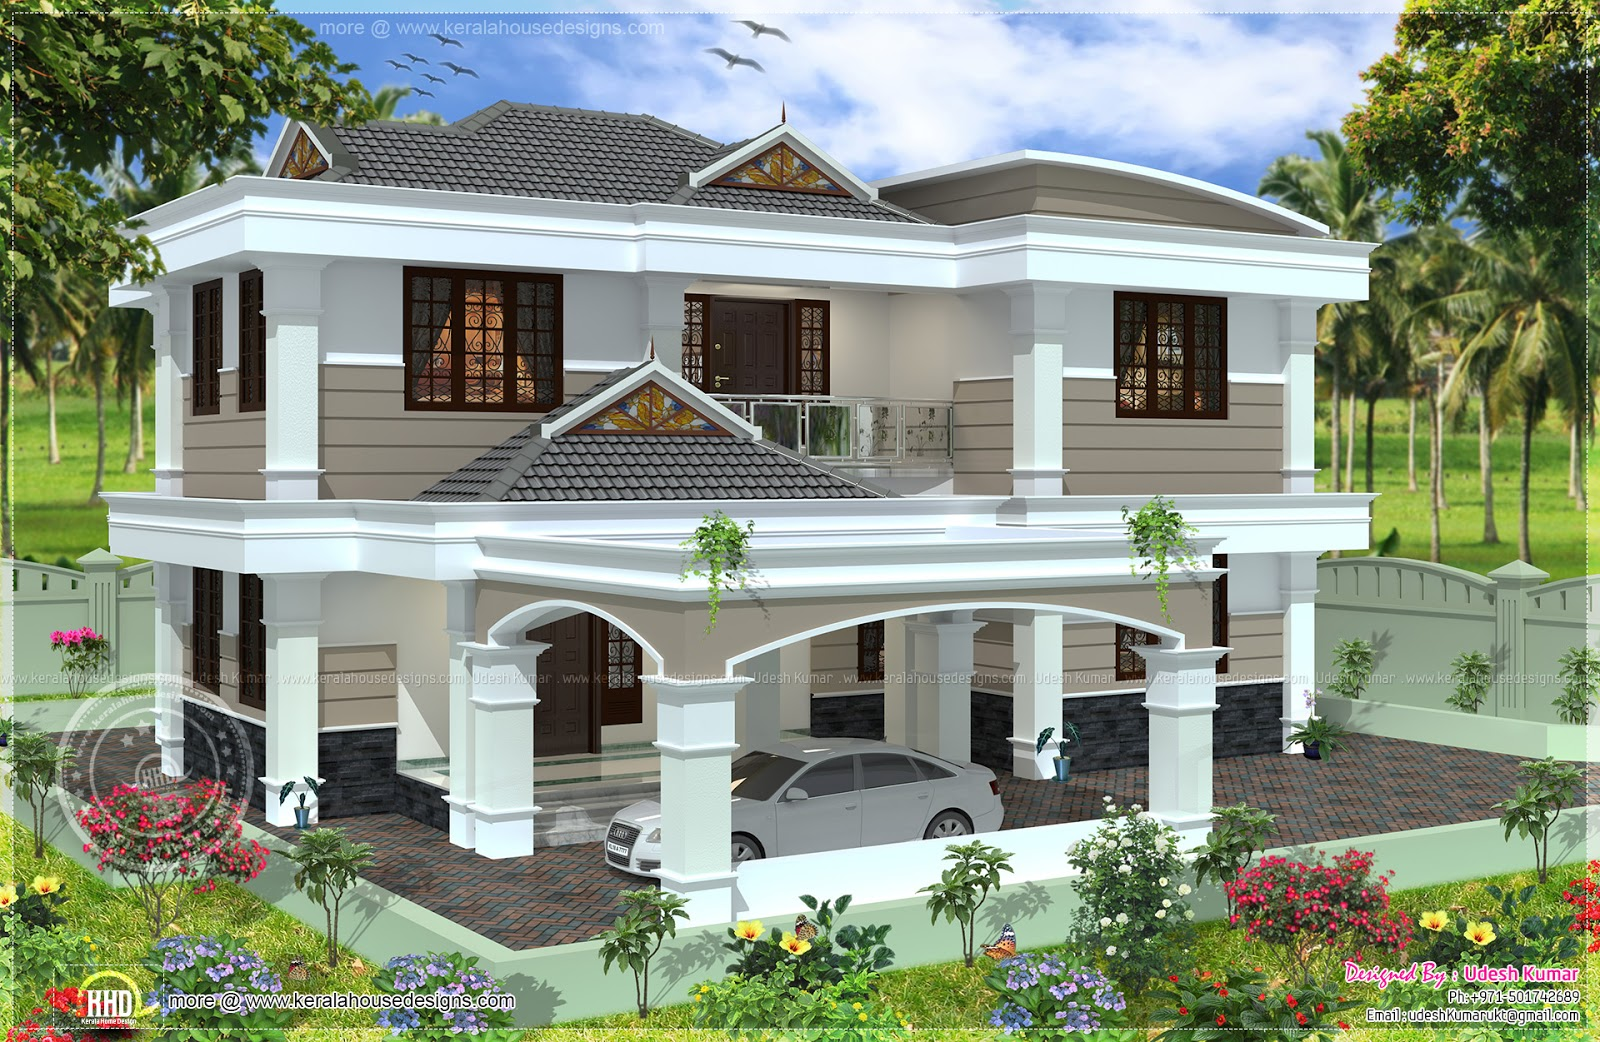 left side elevation - 10+ Modern Small Two Storey House Plans With Balcony Pictures